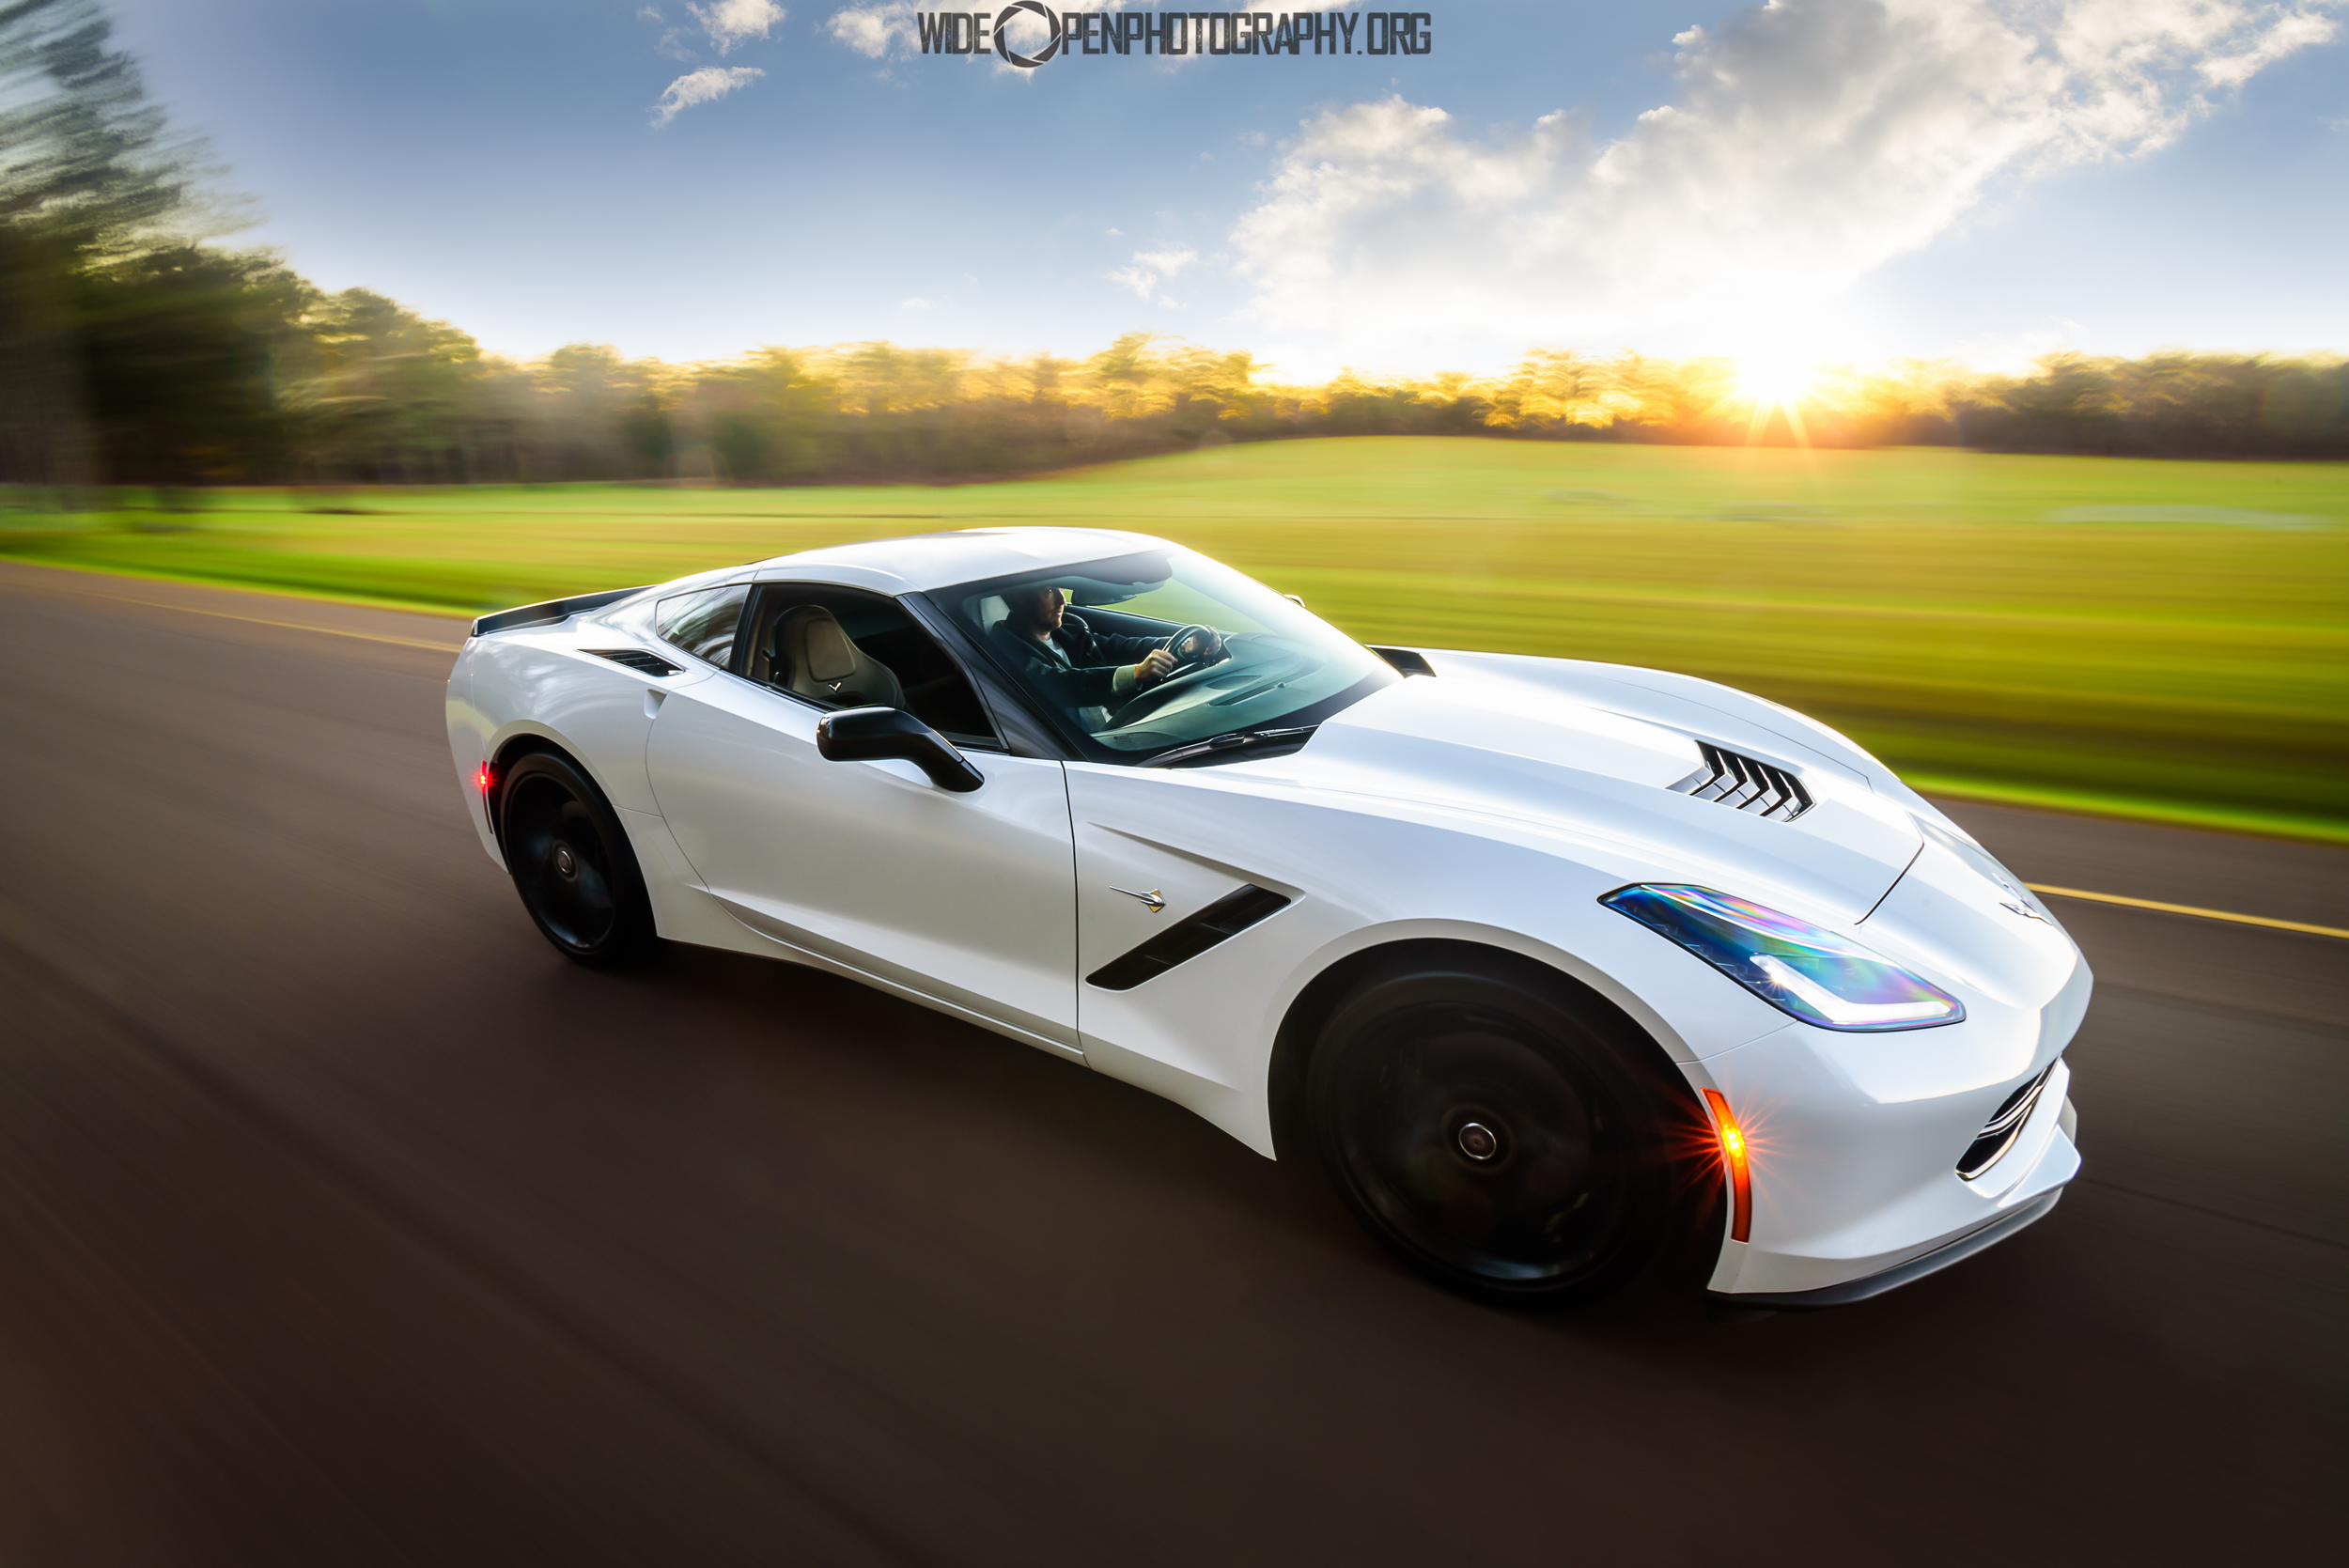 Shawn's C7 (1 of 1)-20.JPG